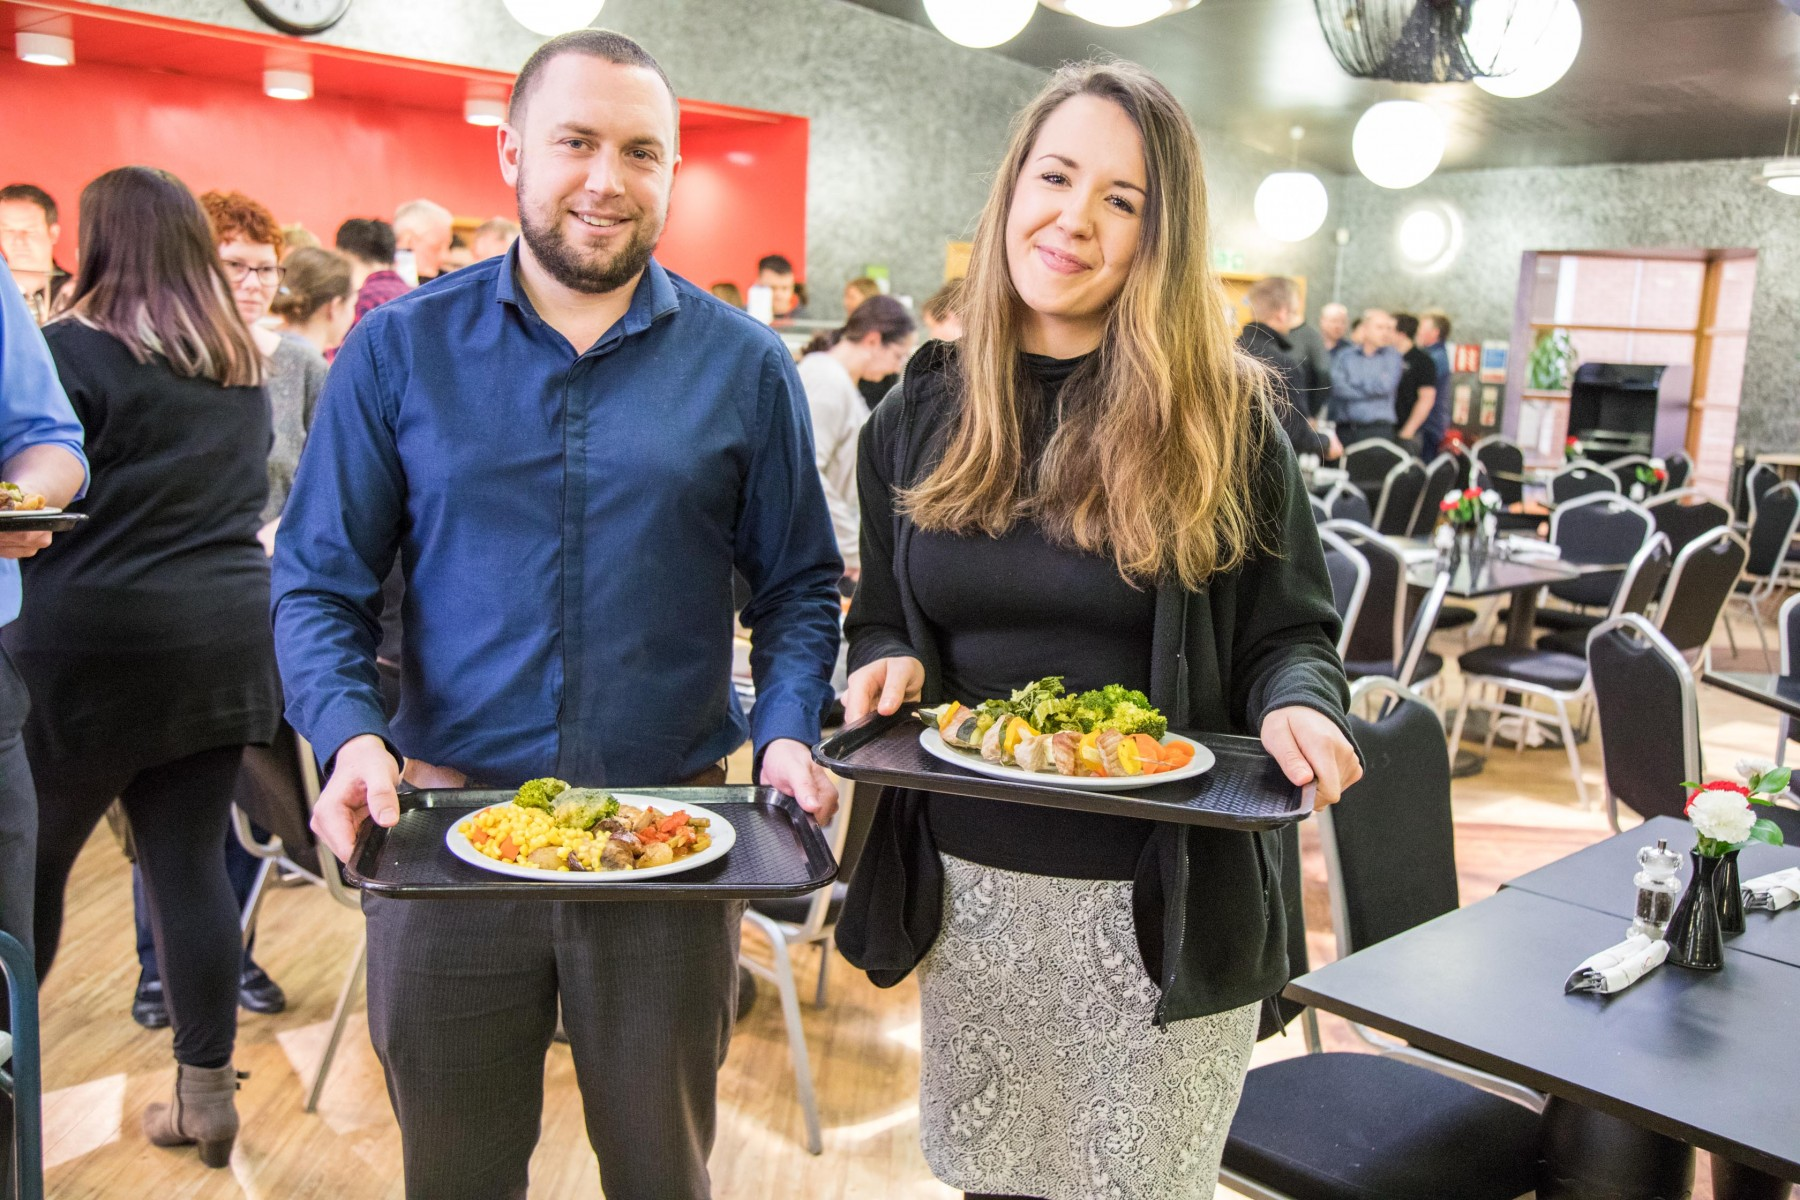 Slimming World head office celebrate healthy eating campaign (2)